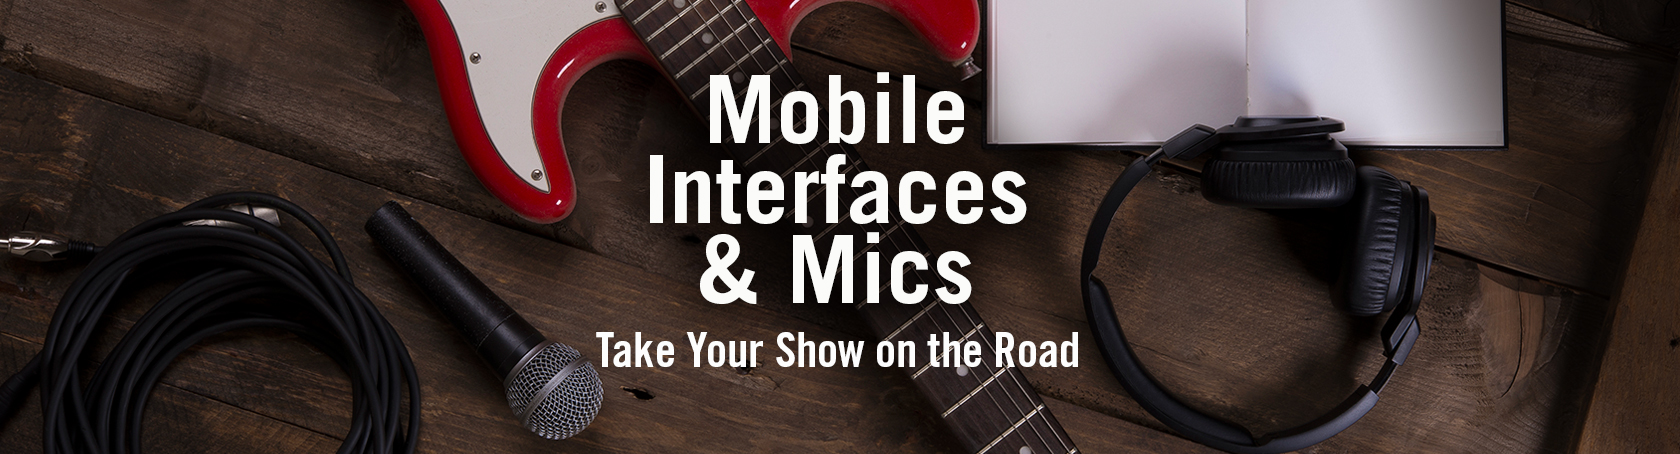 Mobile Interfaces & Mics - Take Your Show on the Road